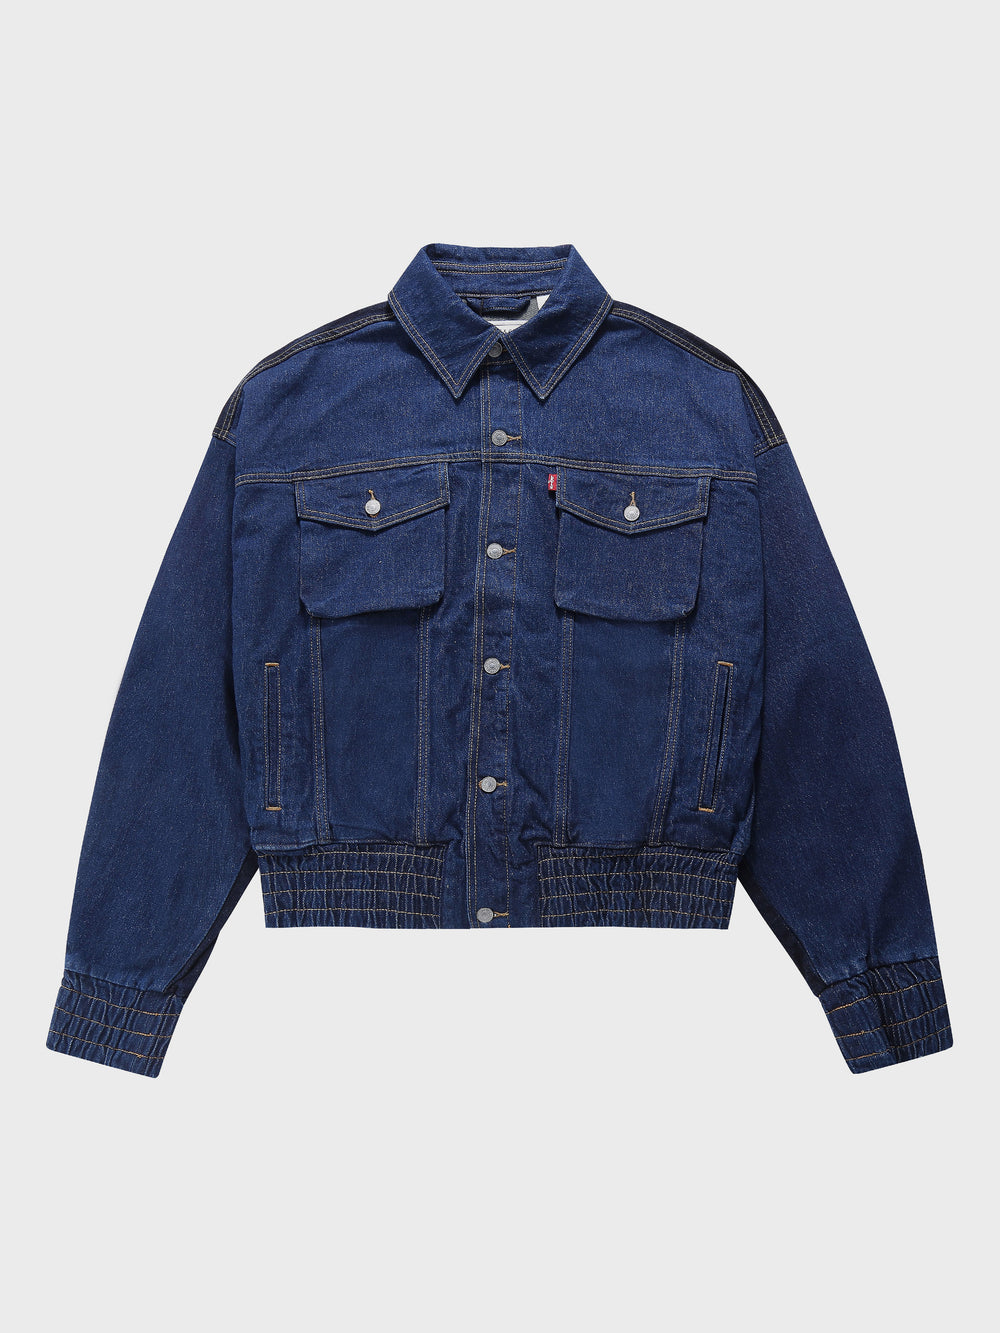 Feng Chen Wang × Levi's > Two-toned Denim Jacket